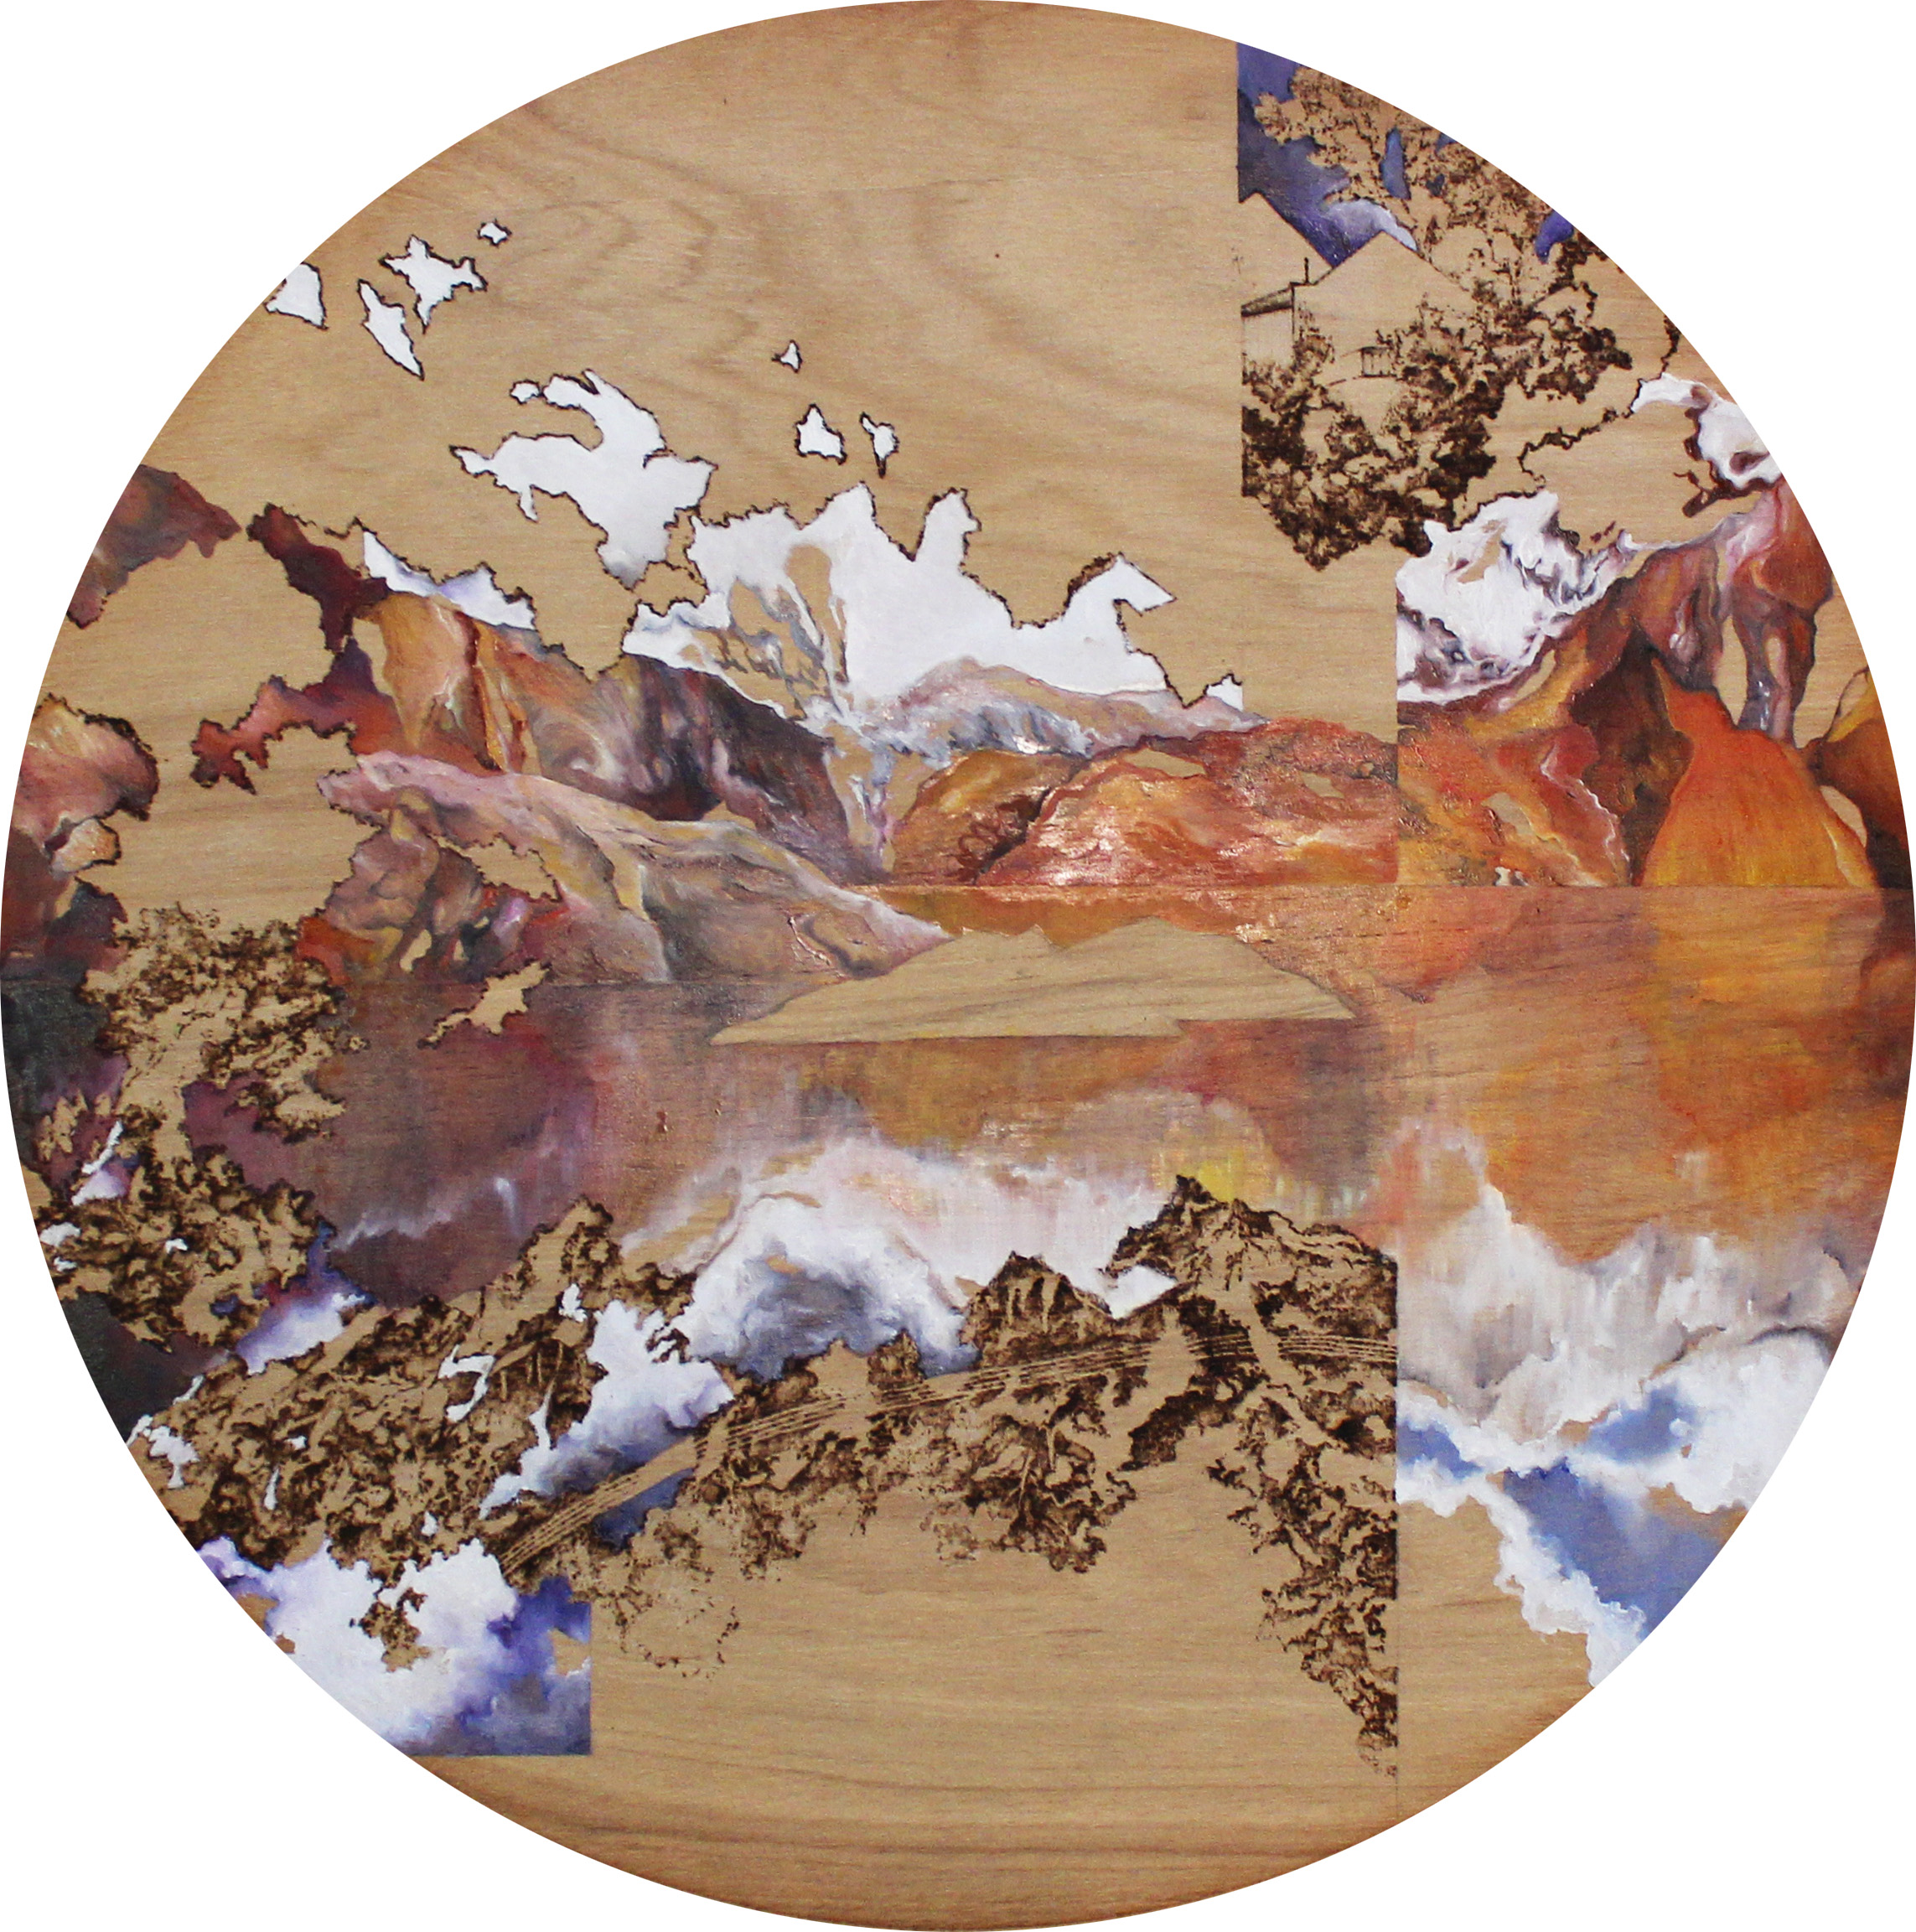 Fictitious Reflection, 2016 Oil and Pyrography on Wood.